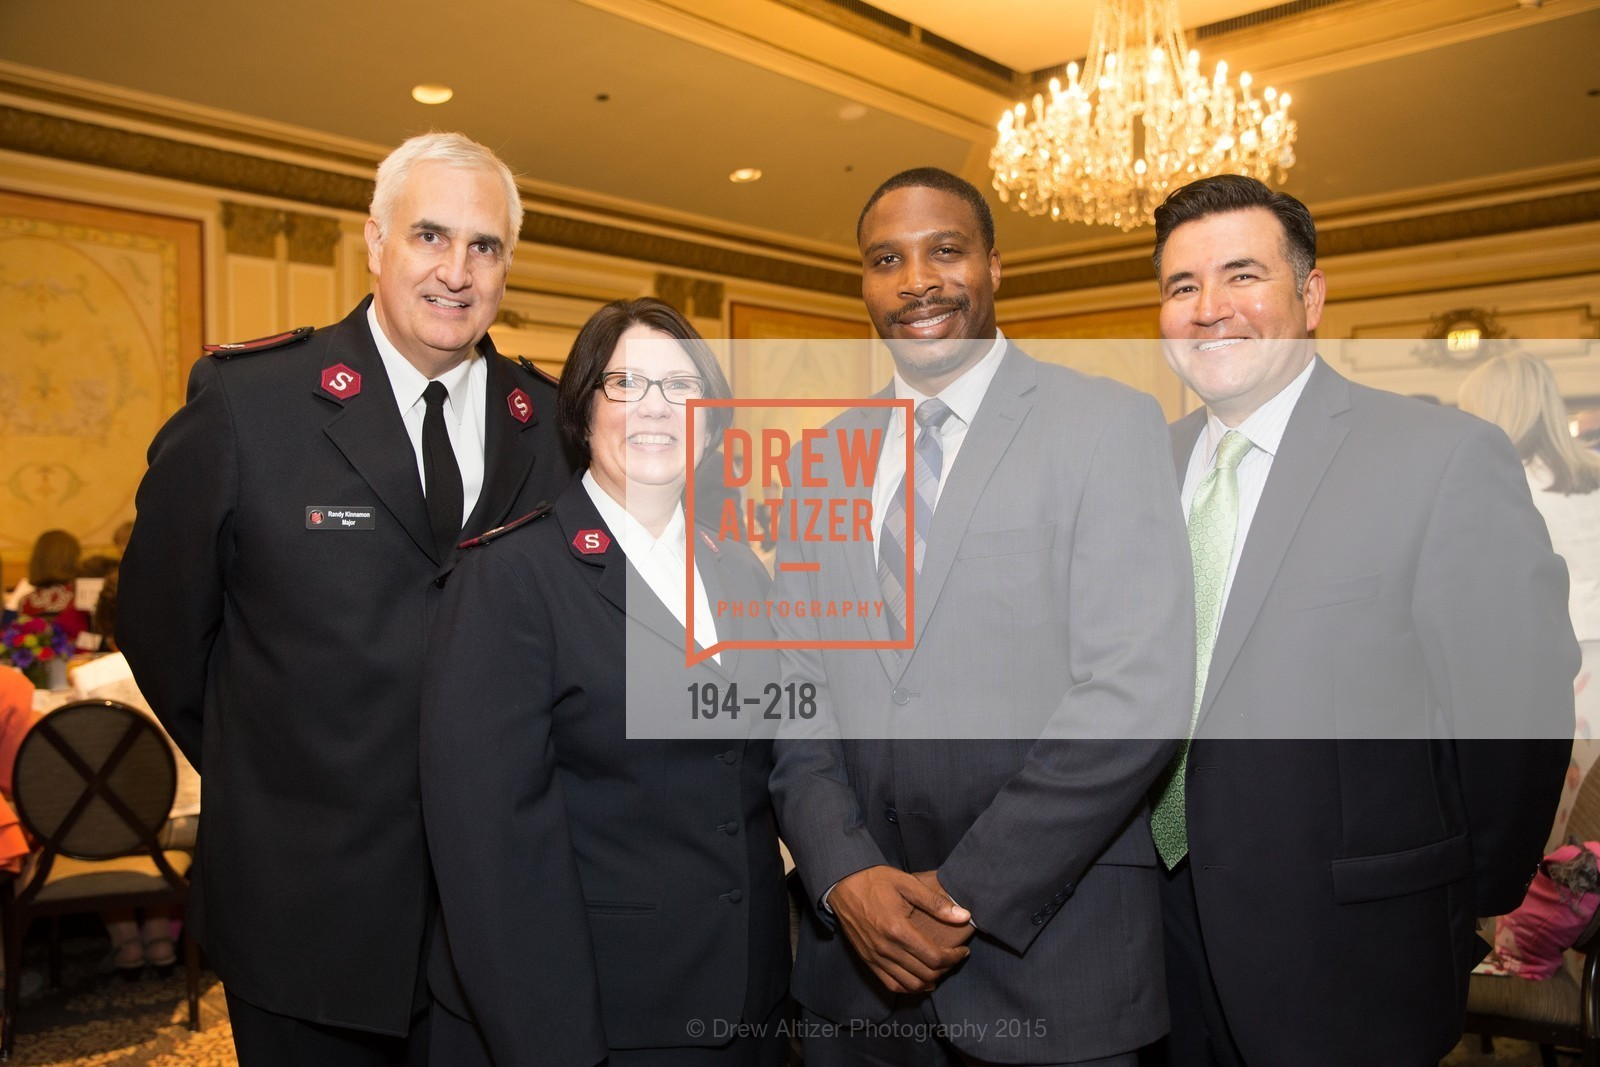 Randy Kinnamon, Cheryl Kinnamon, Derrick Brown, Enrique Obando, Salvation Army Flower Power Luncheon, Sir Francis Drake Hotel. 450 Powell St, August 4th, 2015,Drew Altizer, Drew Altizer Photography, full-service event agency, private events, San Francisco photographer, photographer California